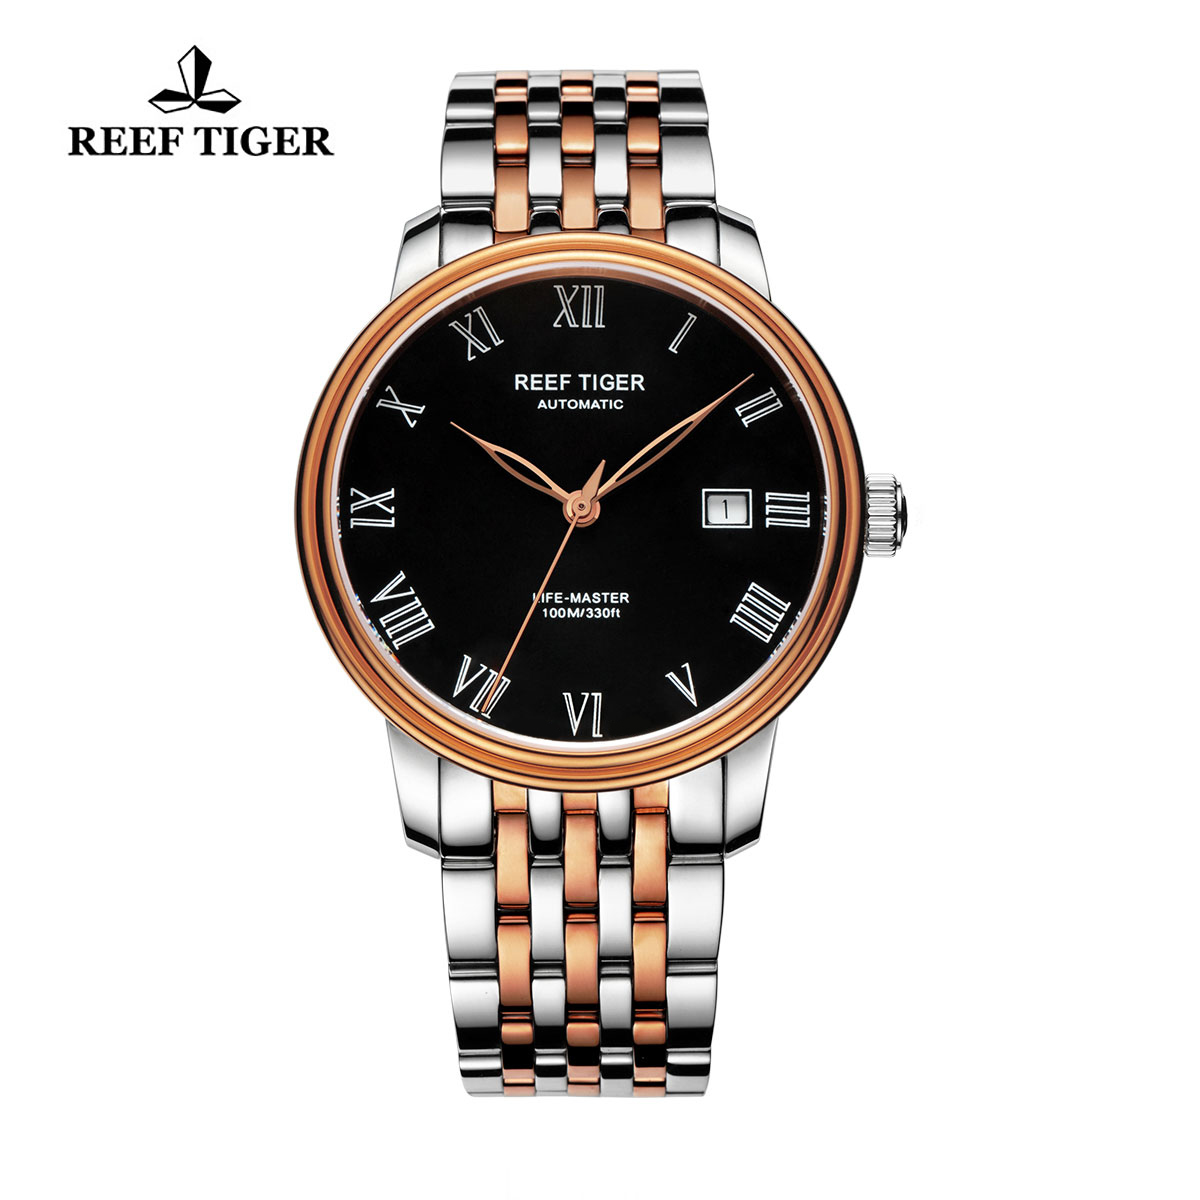 Reef Tiger Life-Master Dress Watch Automatic Rose Gold/Steel Black Dial RGA812-PBT